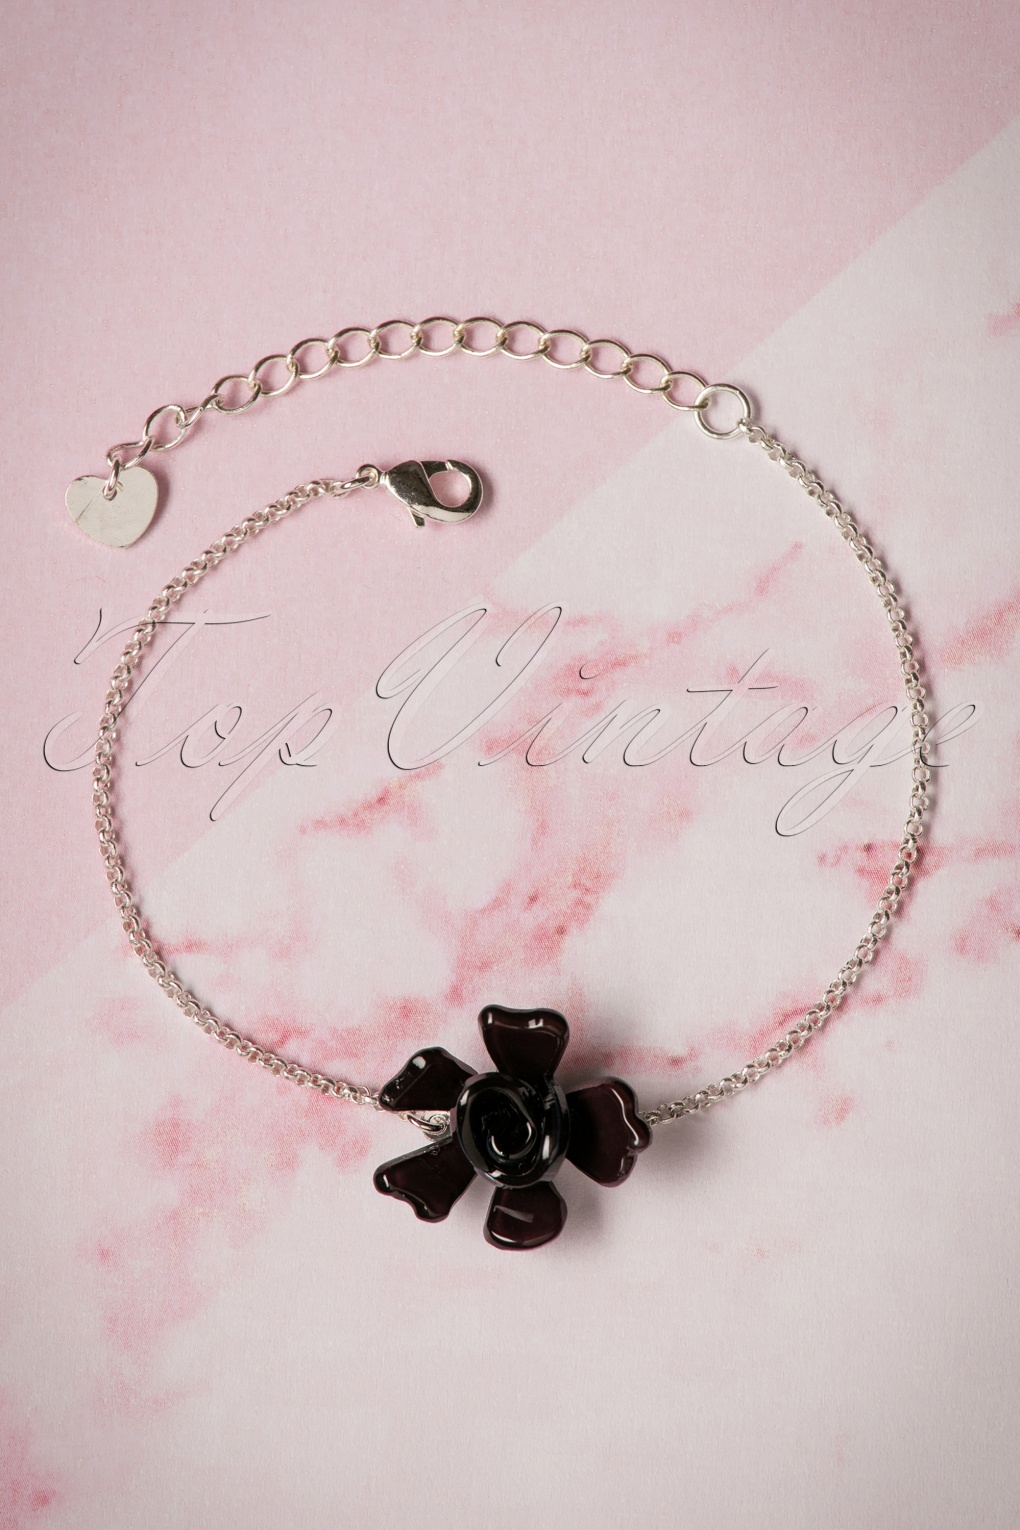 1960s Jewelry – 1960s Style Necklaces, Earrings, Rings, Bracelets 60s Single Rose Silver Plated Bracelet in Black £14.96 AT vintagedancer.com